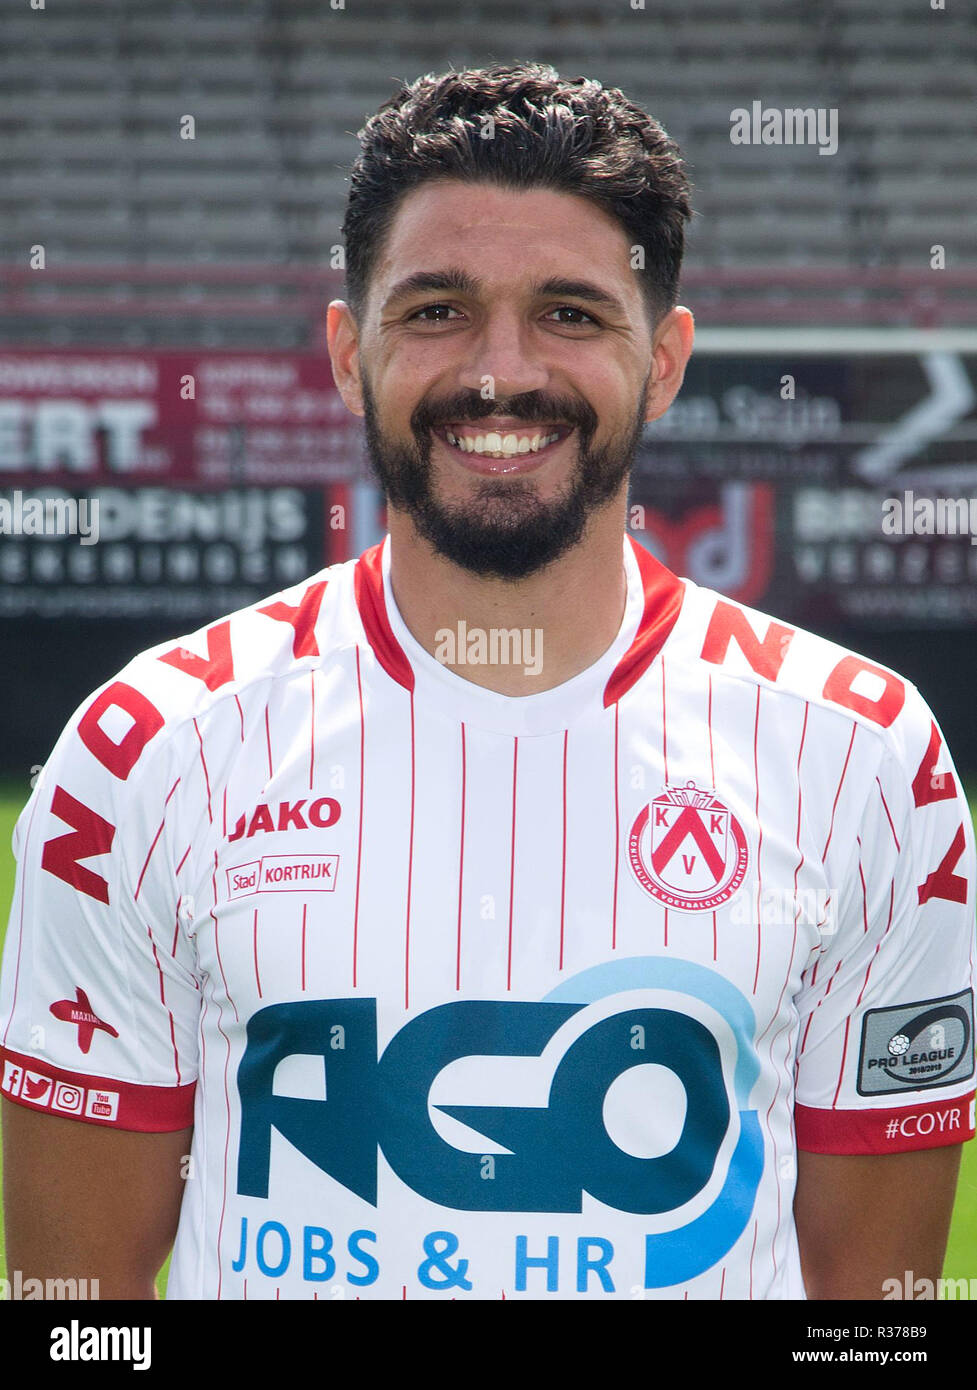 KORTRIJK, BELGIUM - JULY 16 : Elohim Rolland pictured during the 2018 - 2019 season photo shoot of Kv Kortrijk on July 16, 2018 in Kortrijk, Belgium. (Photo by Romaen Dominique/Isosport) - Stock Image